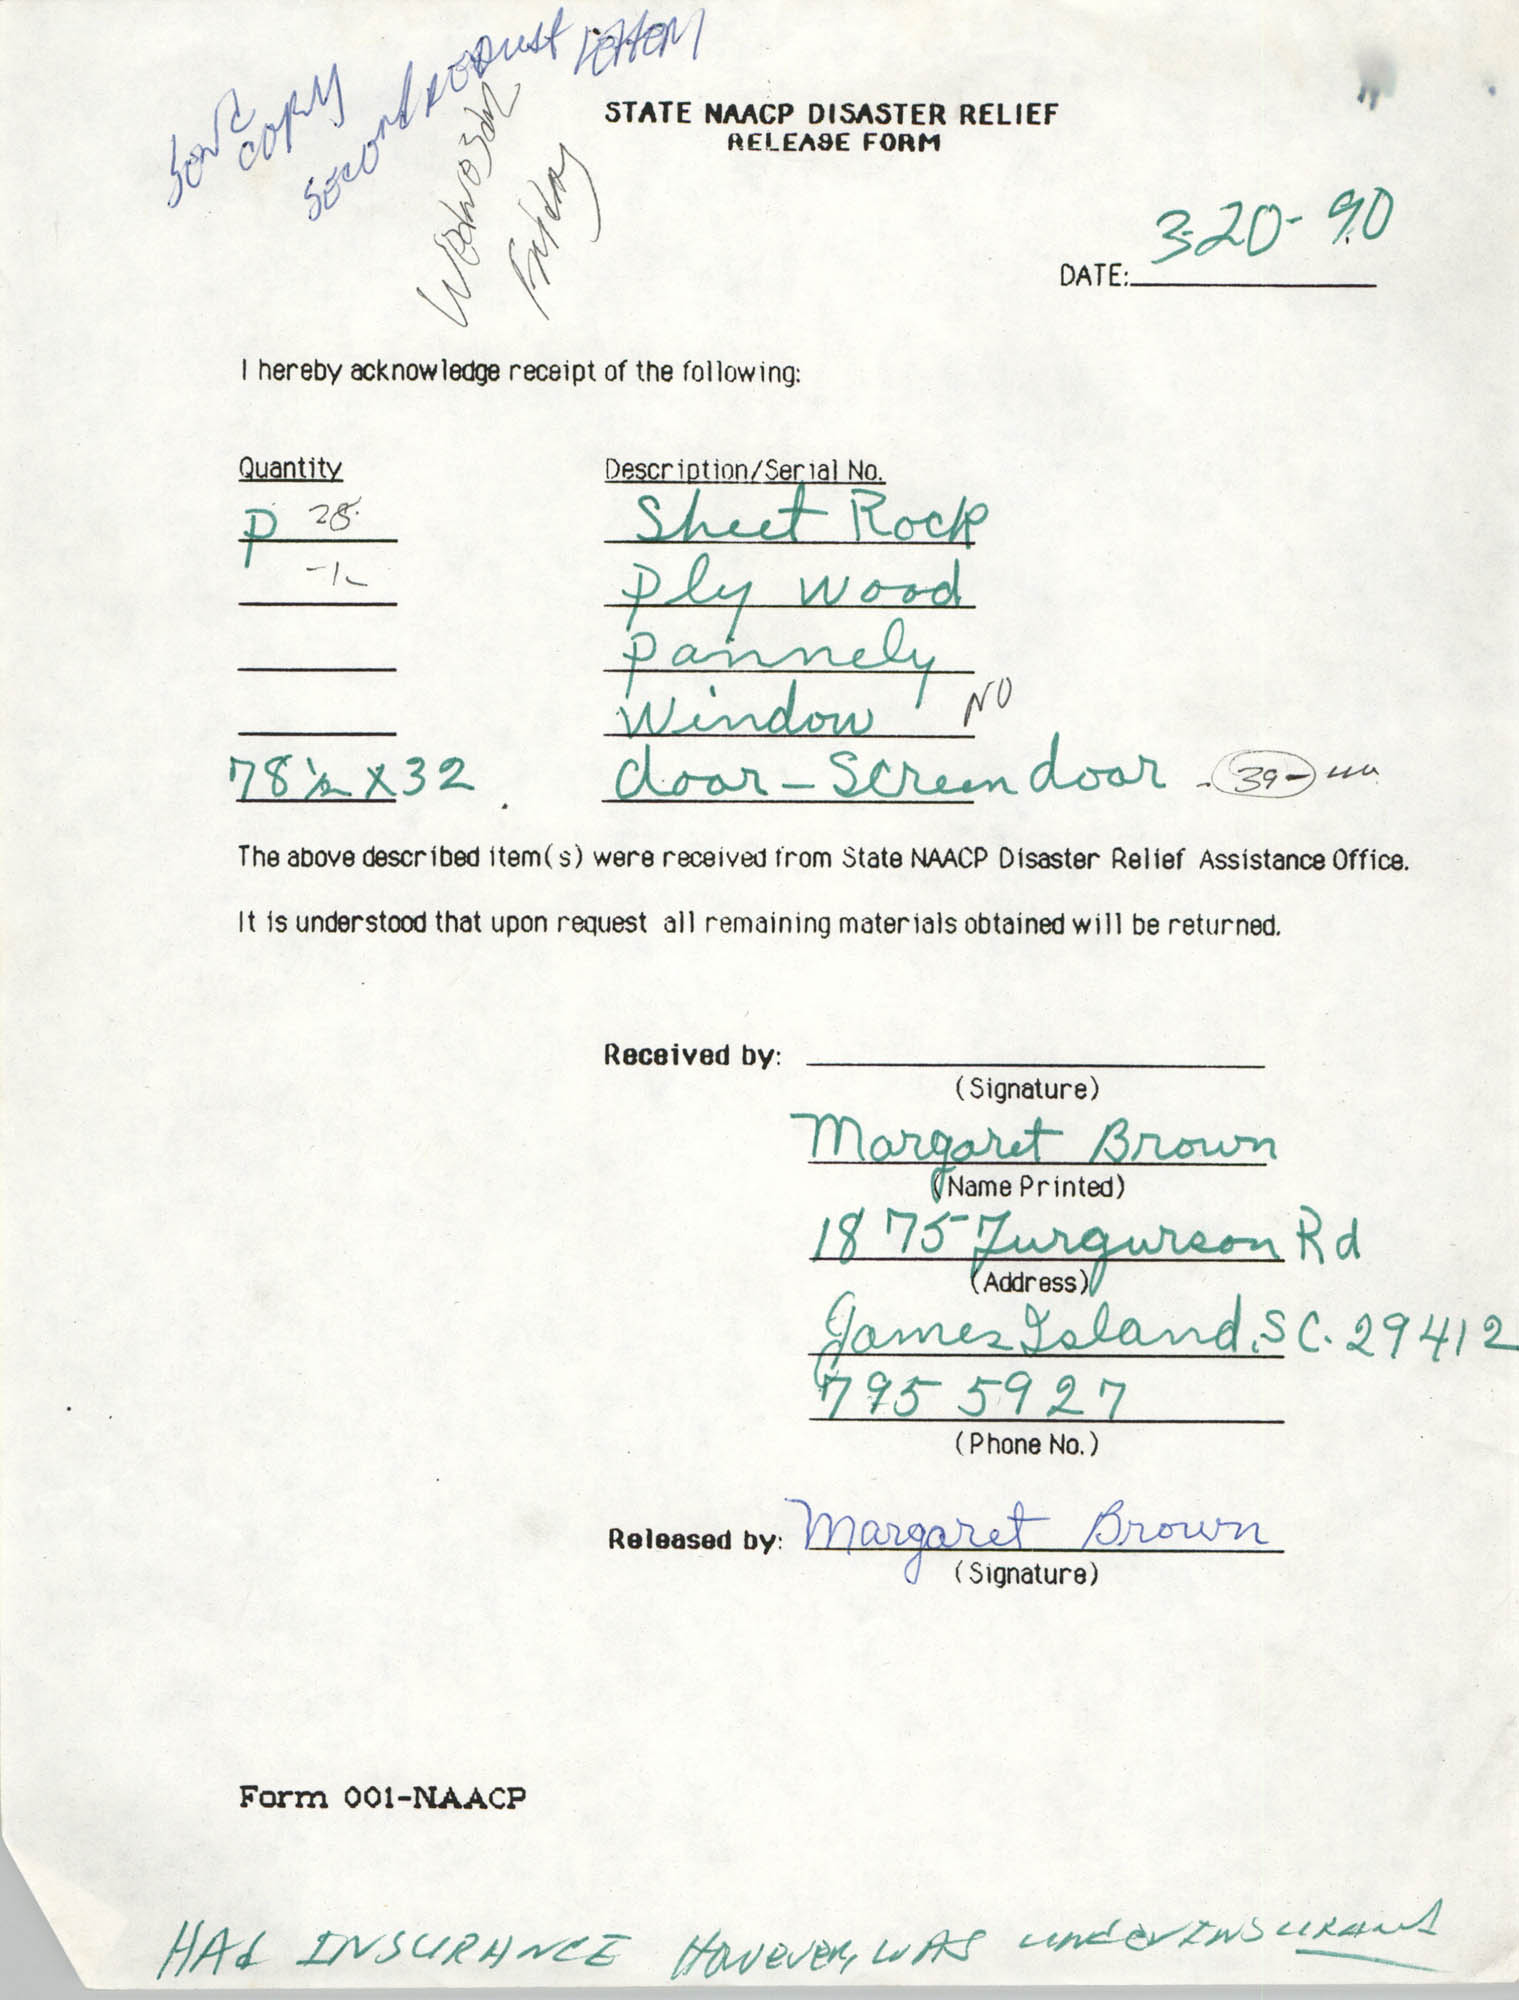 State NAACP Disaster Relief, Hurricane Huge Release Form, 1989, Page 16